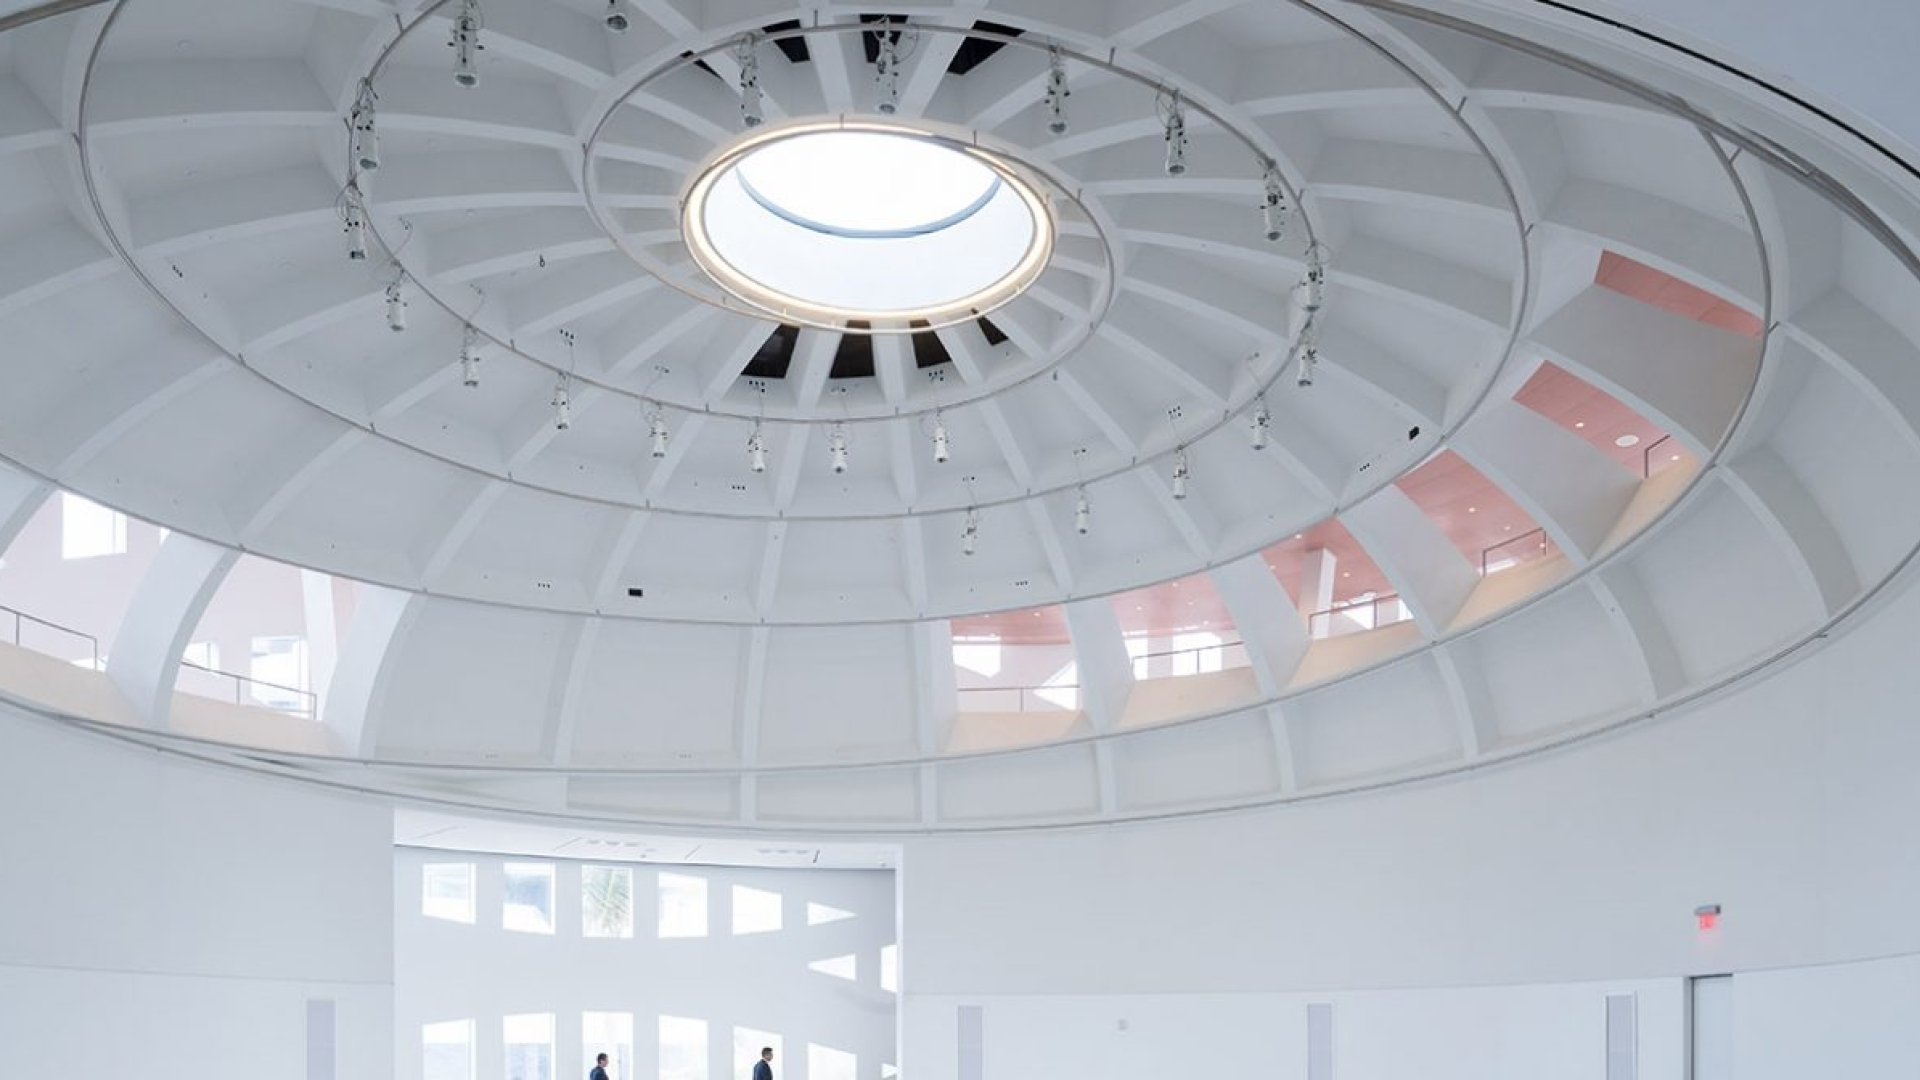 indoor ceiling shot of white sphere-shaped building